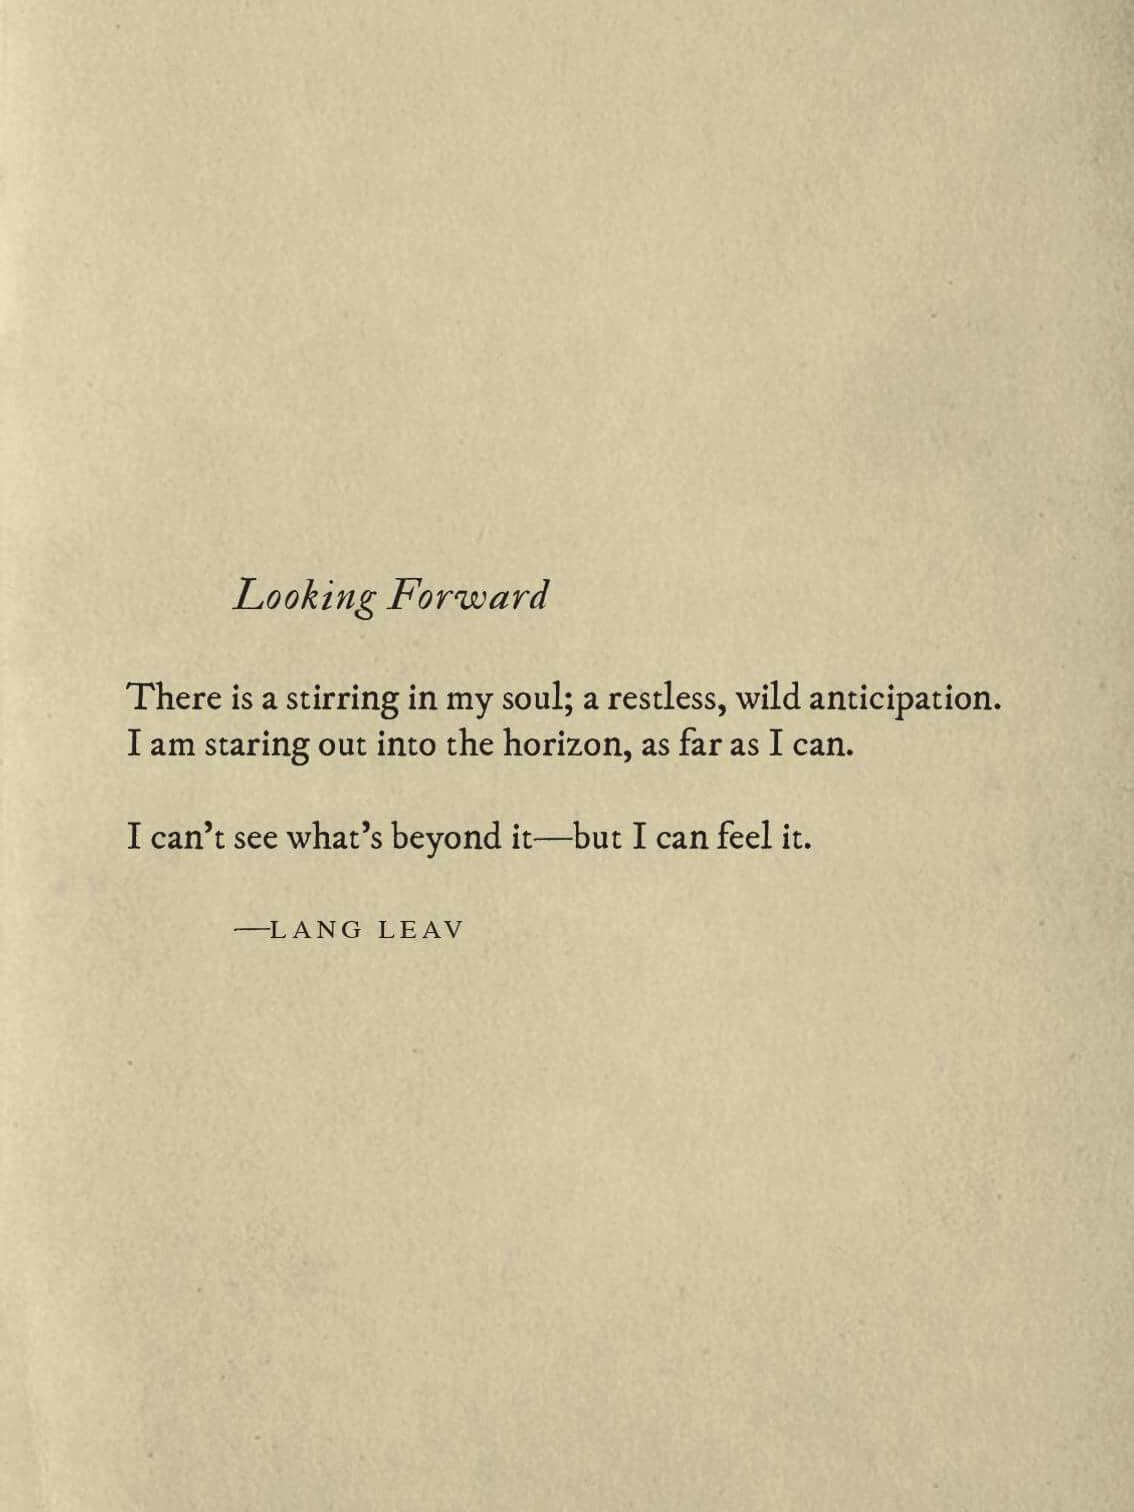 Looking Forward Quotes Brilliant Looking Forward #langleav  Beatitudes Of Life  Pinterest  Wisdom